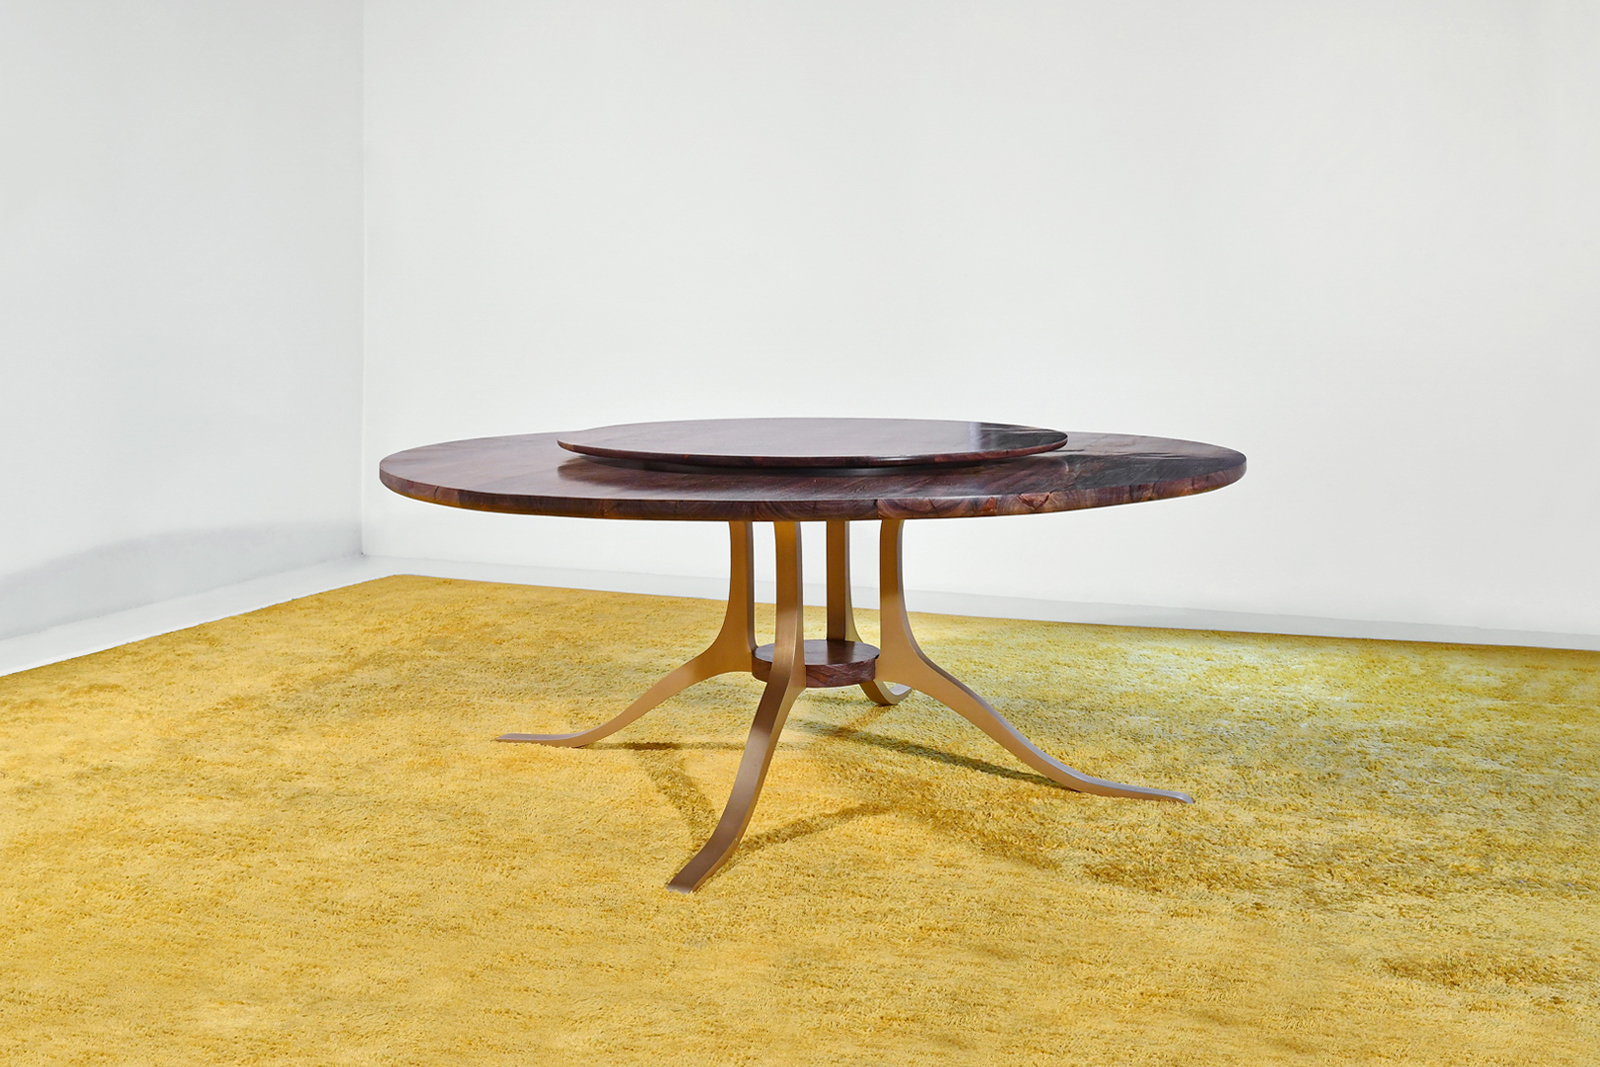 PTendercool-FTOP Round Table-PT15-BS1-BB-BL-NO-200625-11